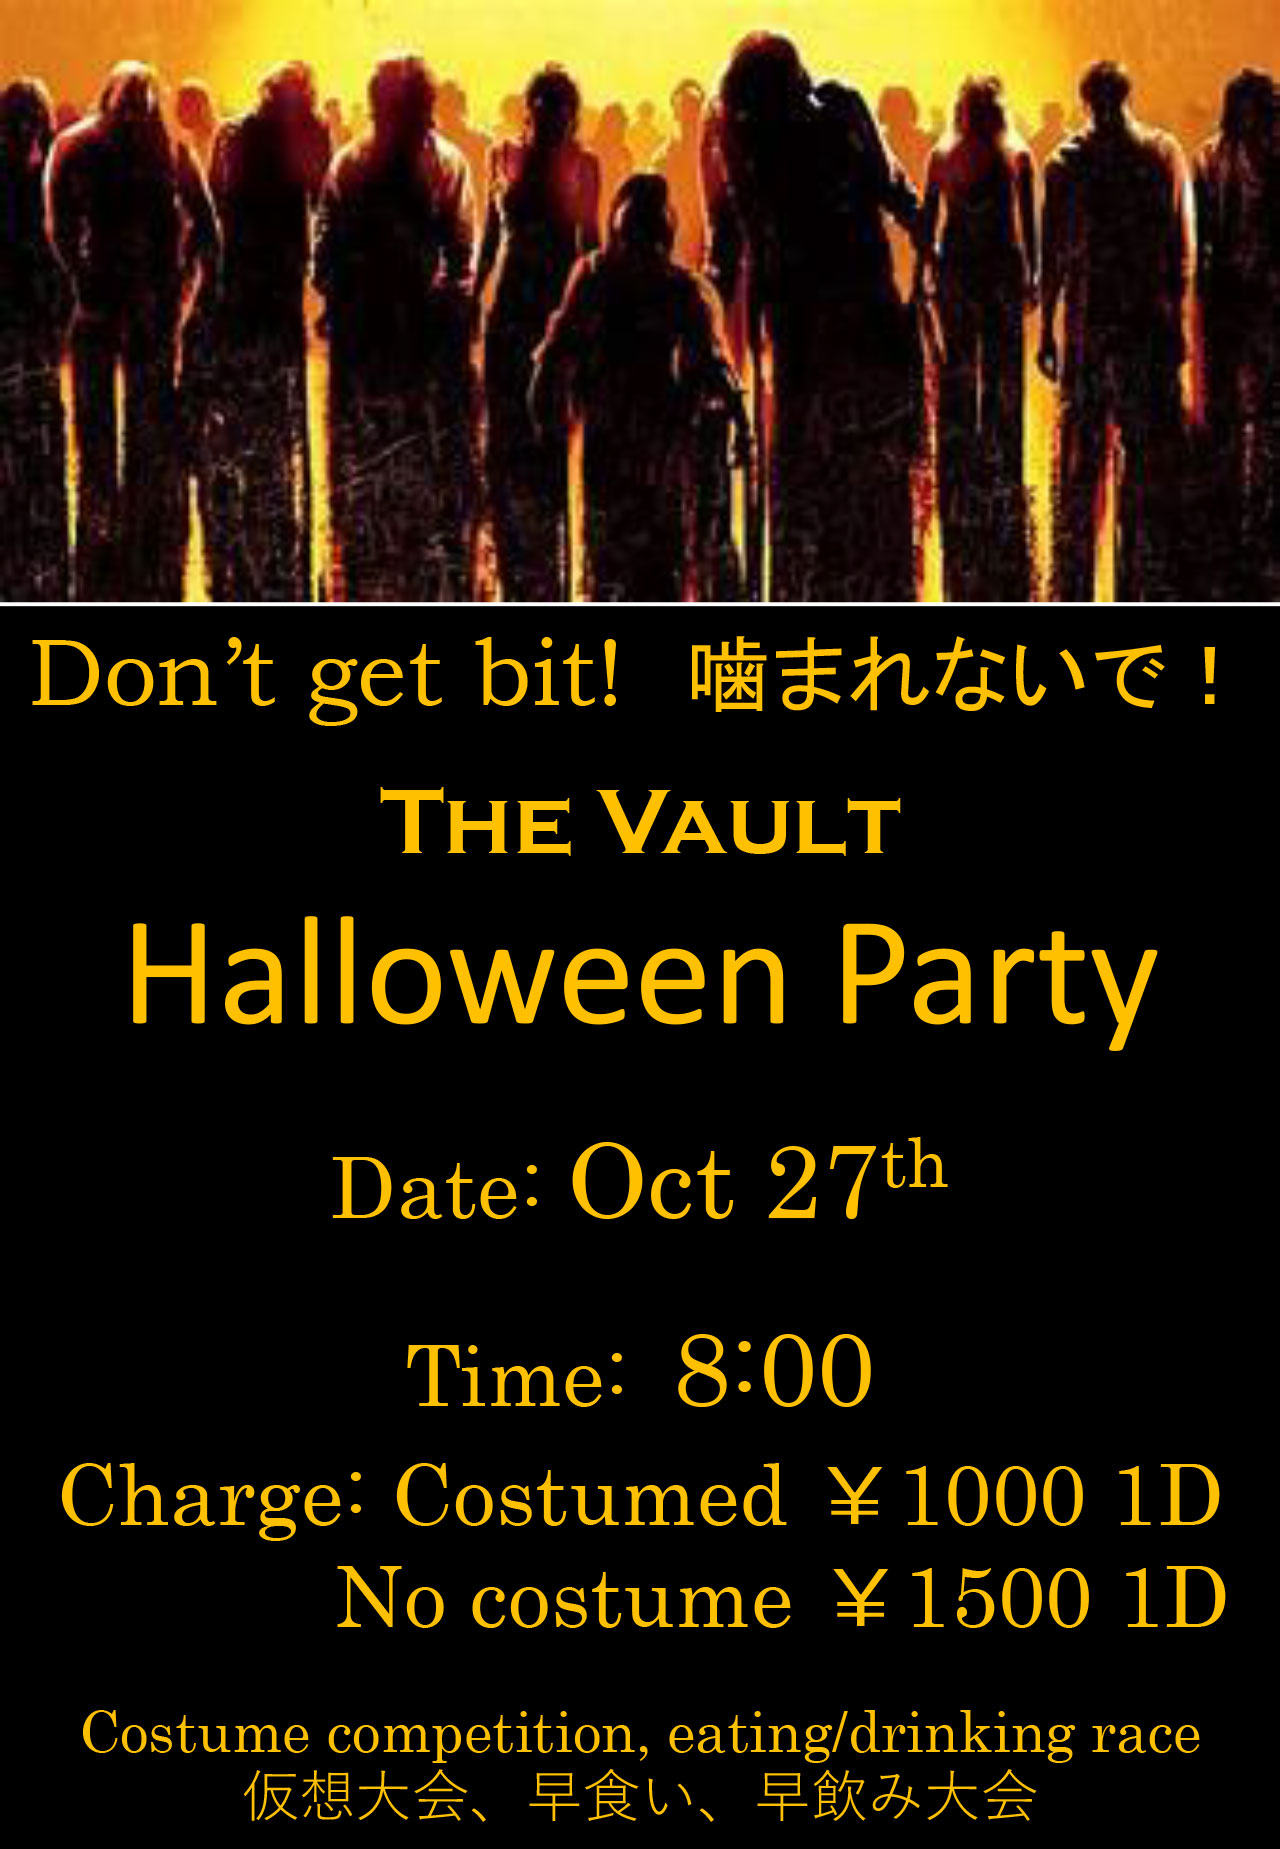 THE VAULT Halloween Party 2018 甲府市 イベント 1